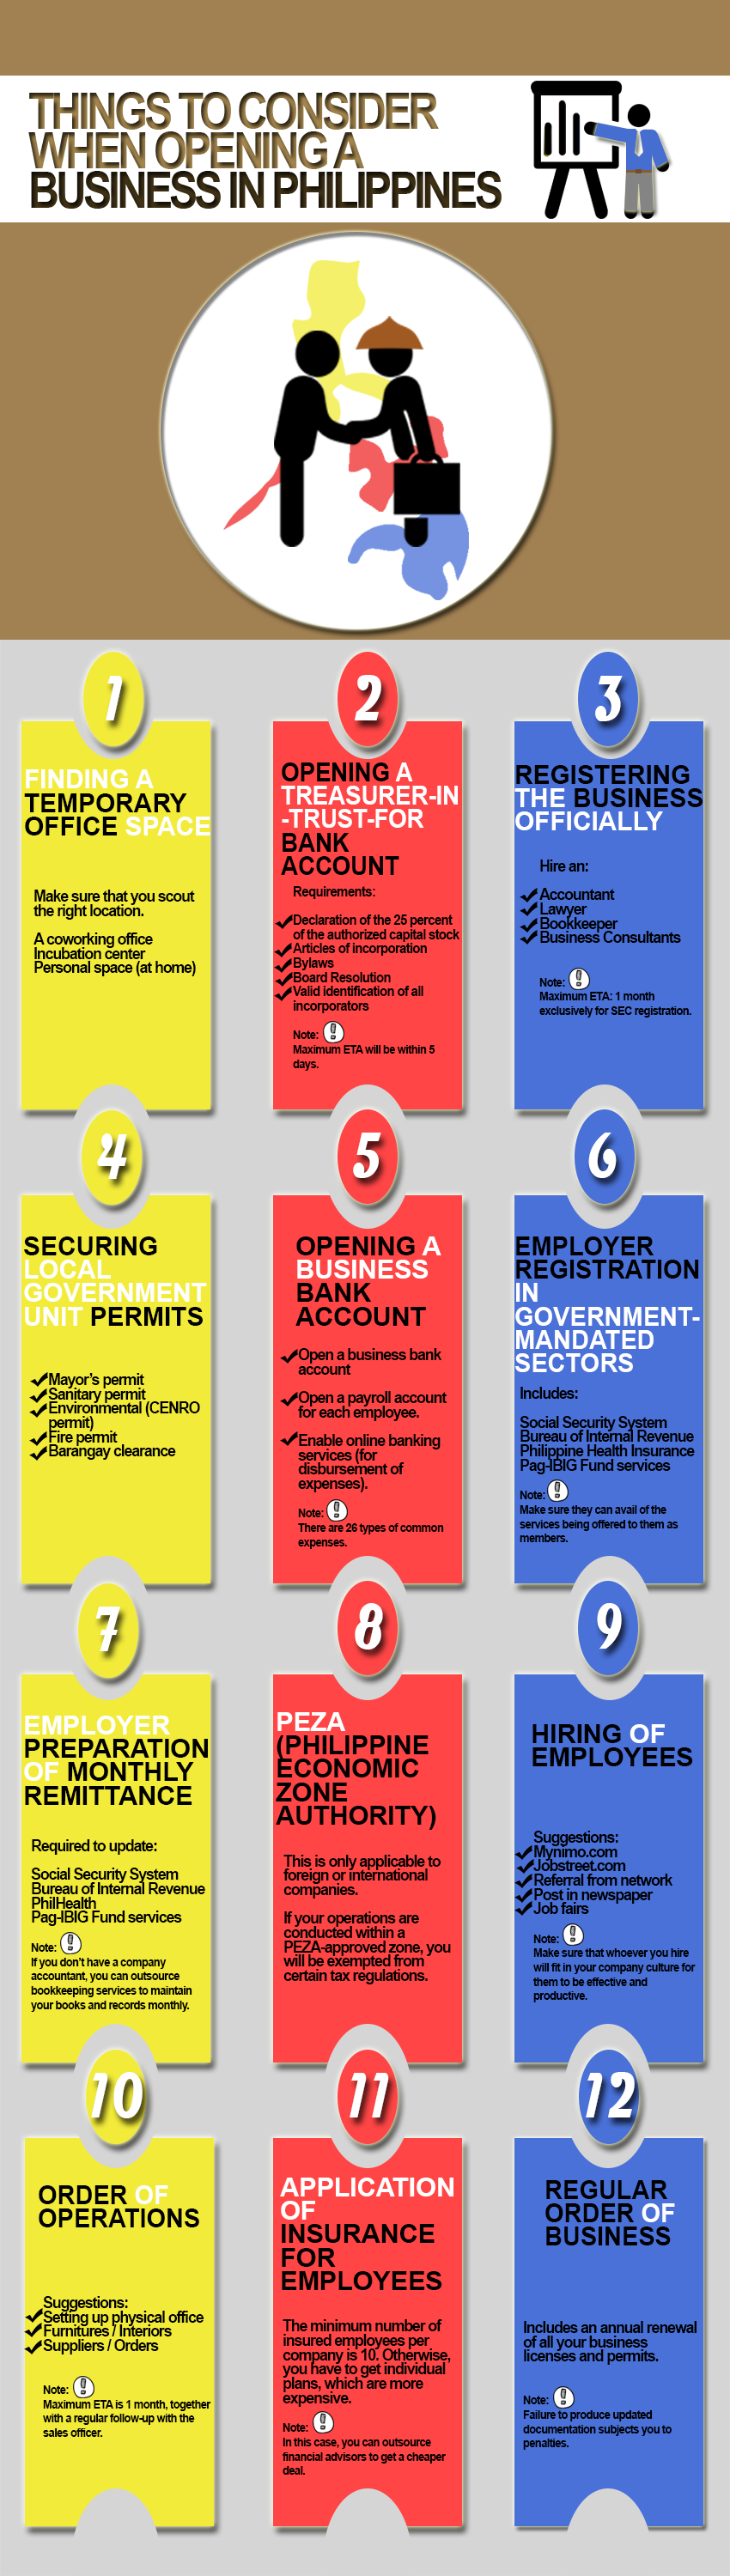 checklist for starting Business in the Philippines